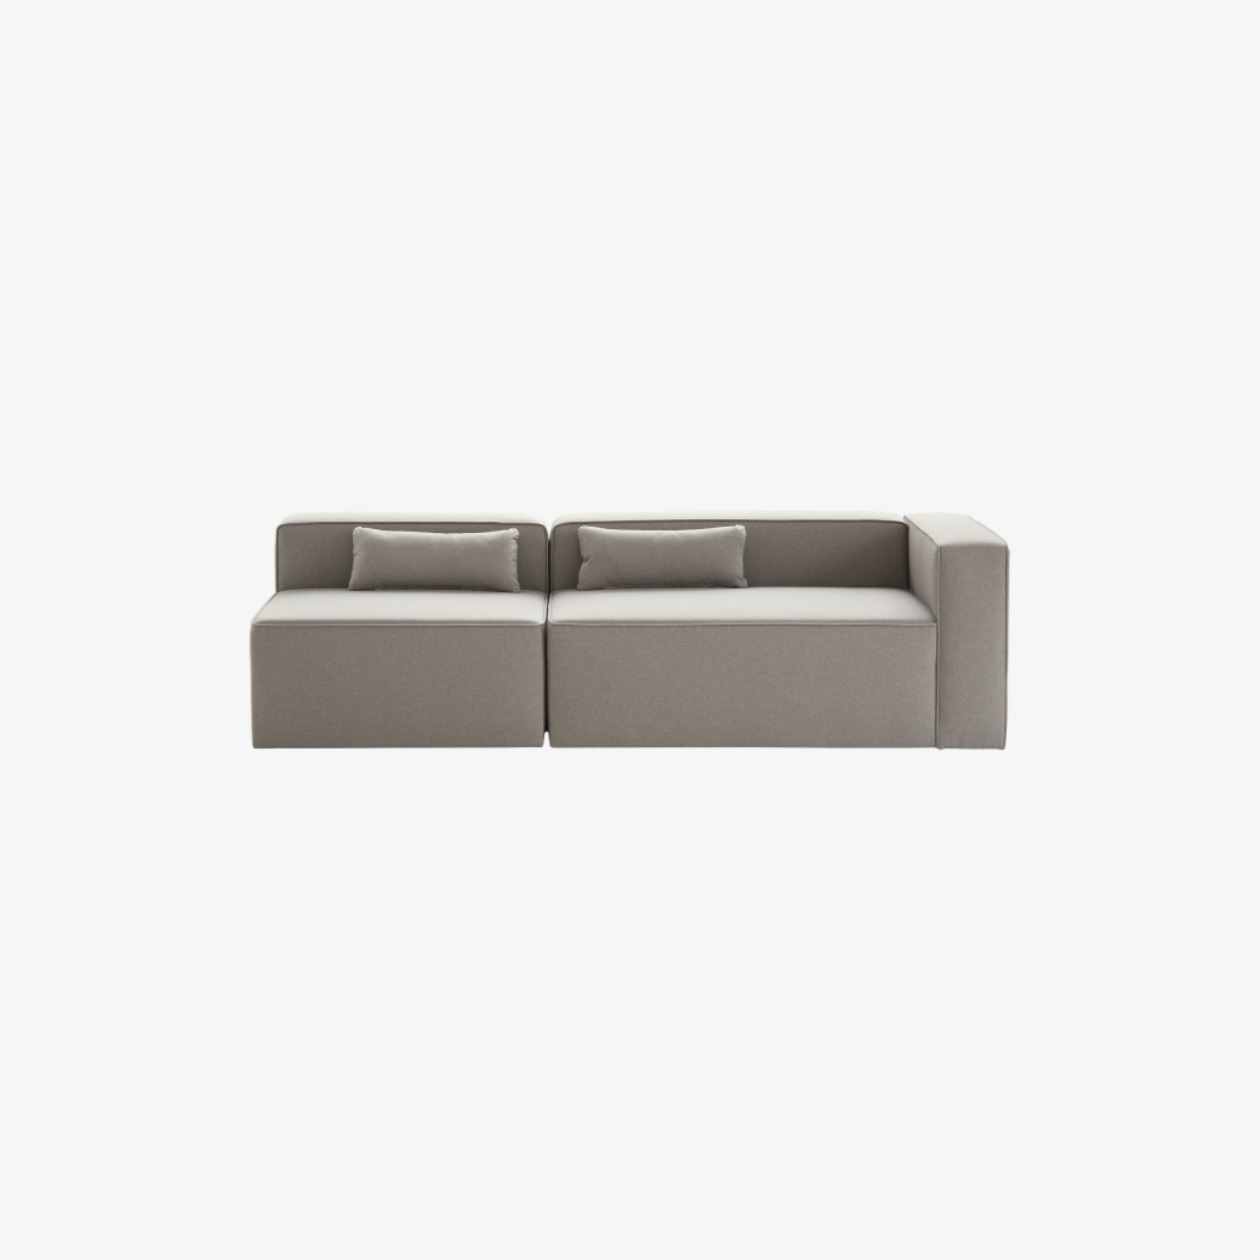 TIMELESS SOFA AB / LATTE BEIGE DP